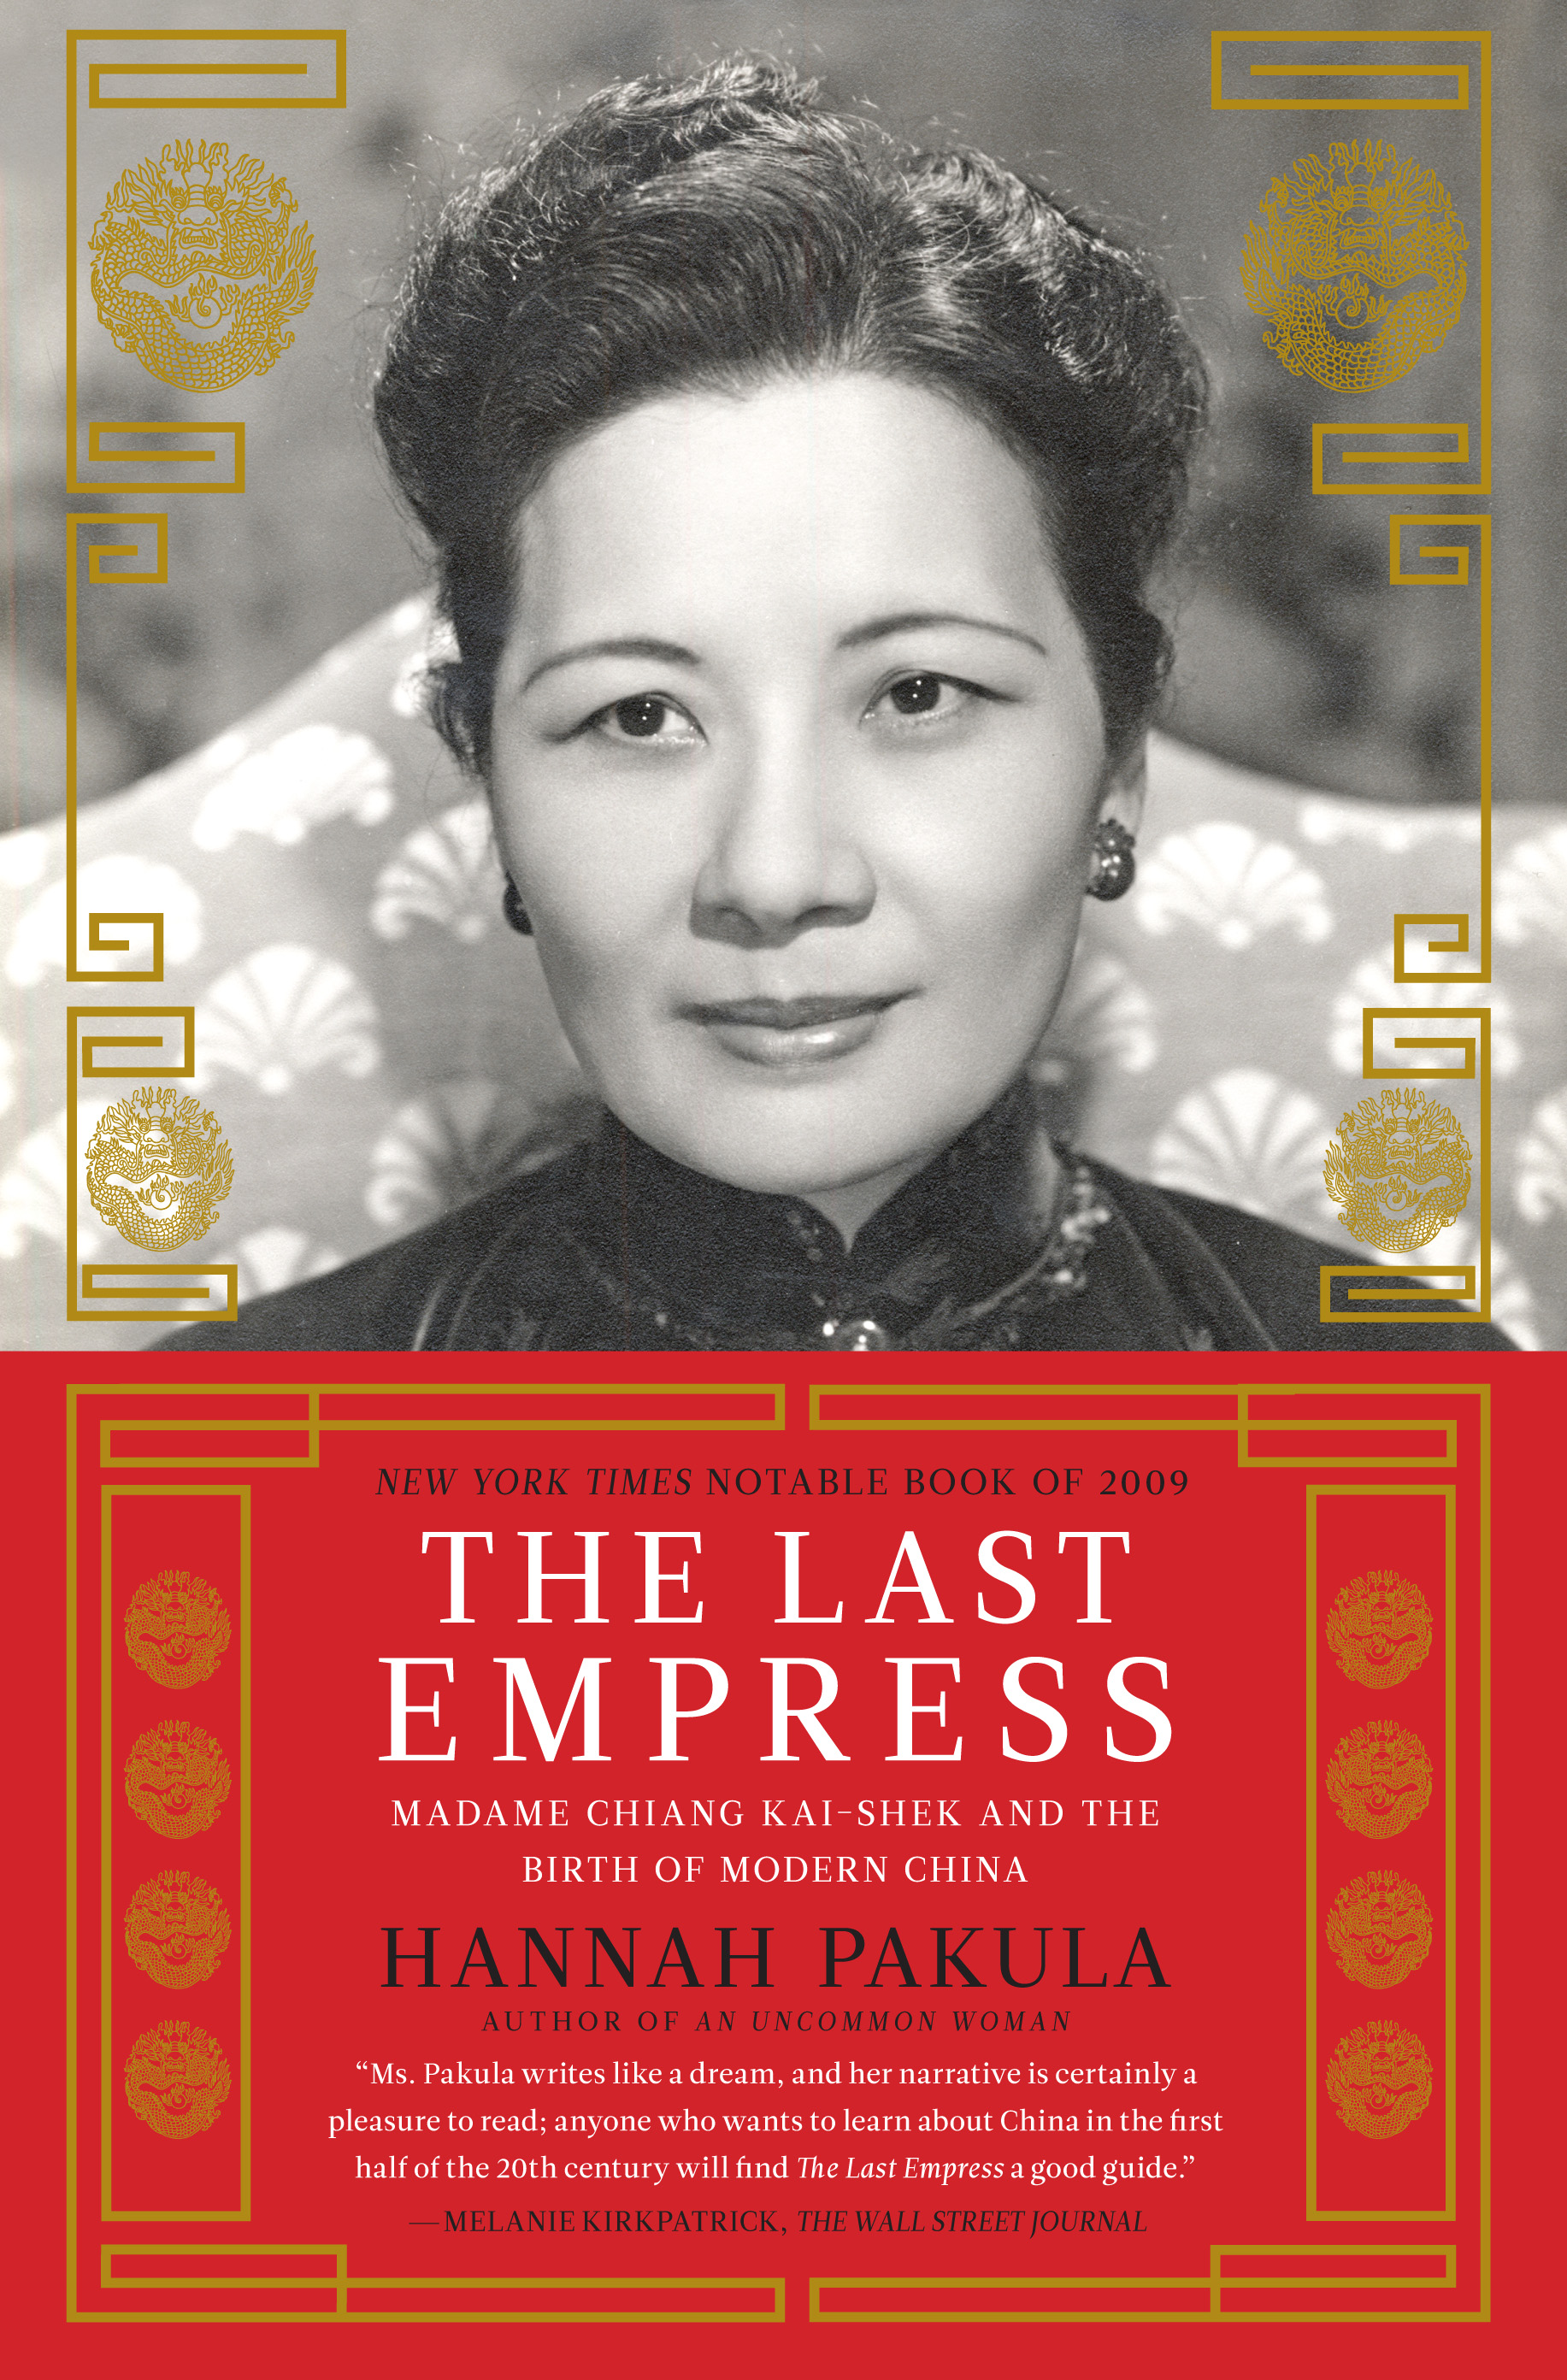 The Last Empress | Book by Hannah Pakula | Official ...